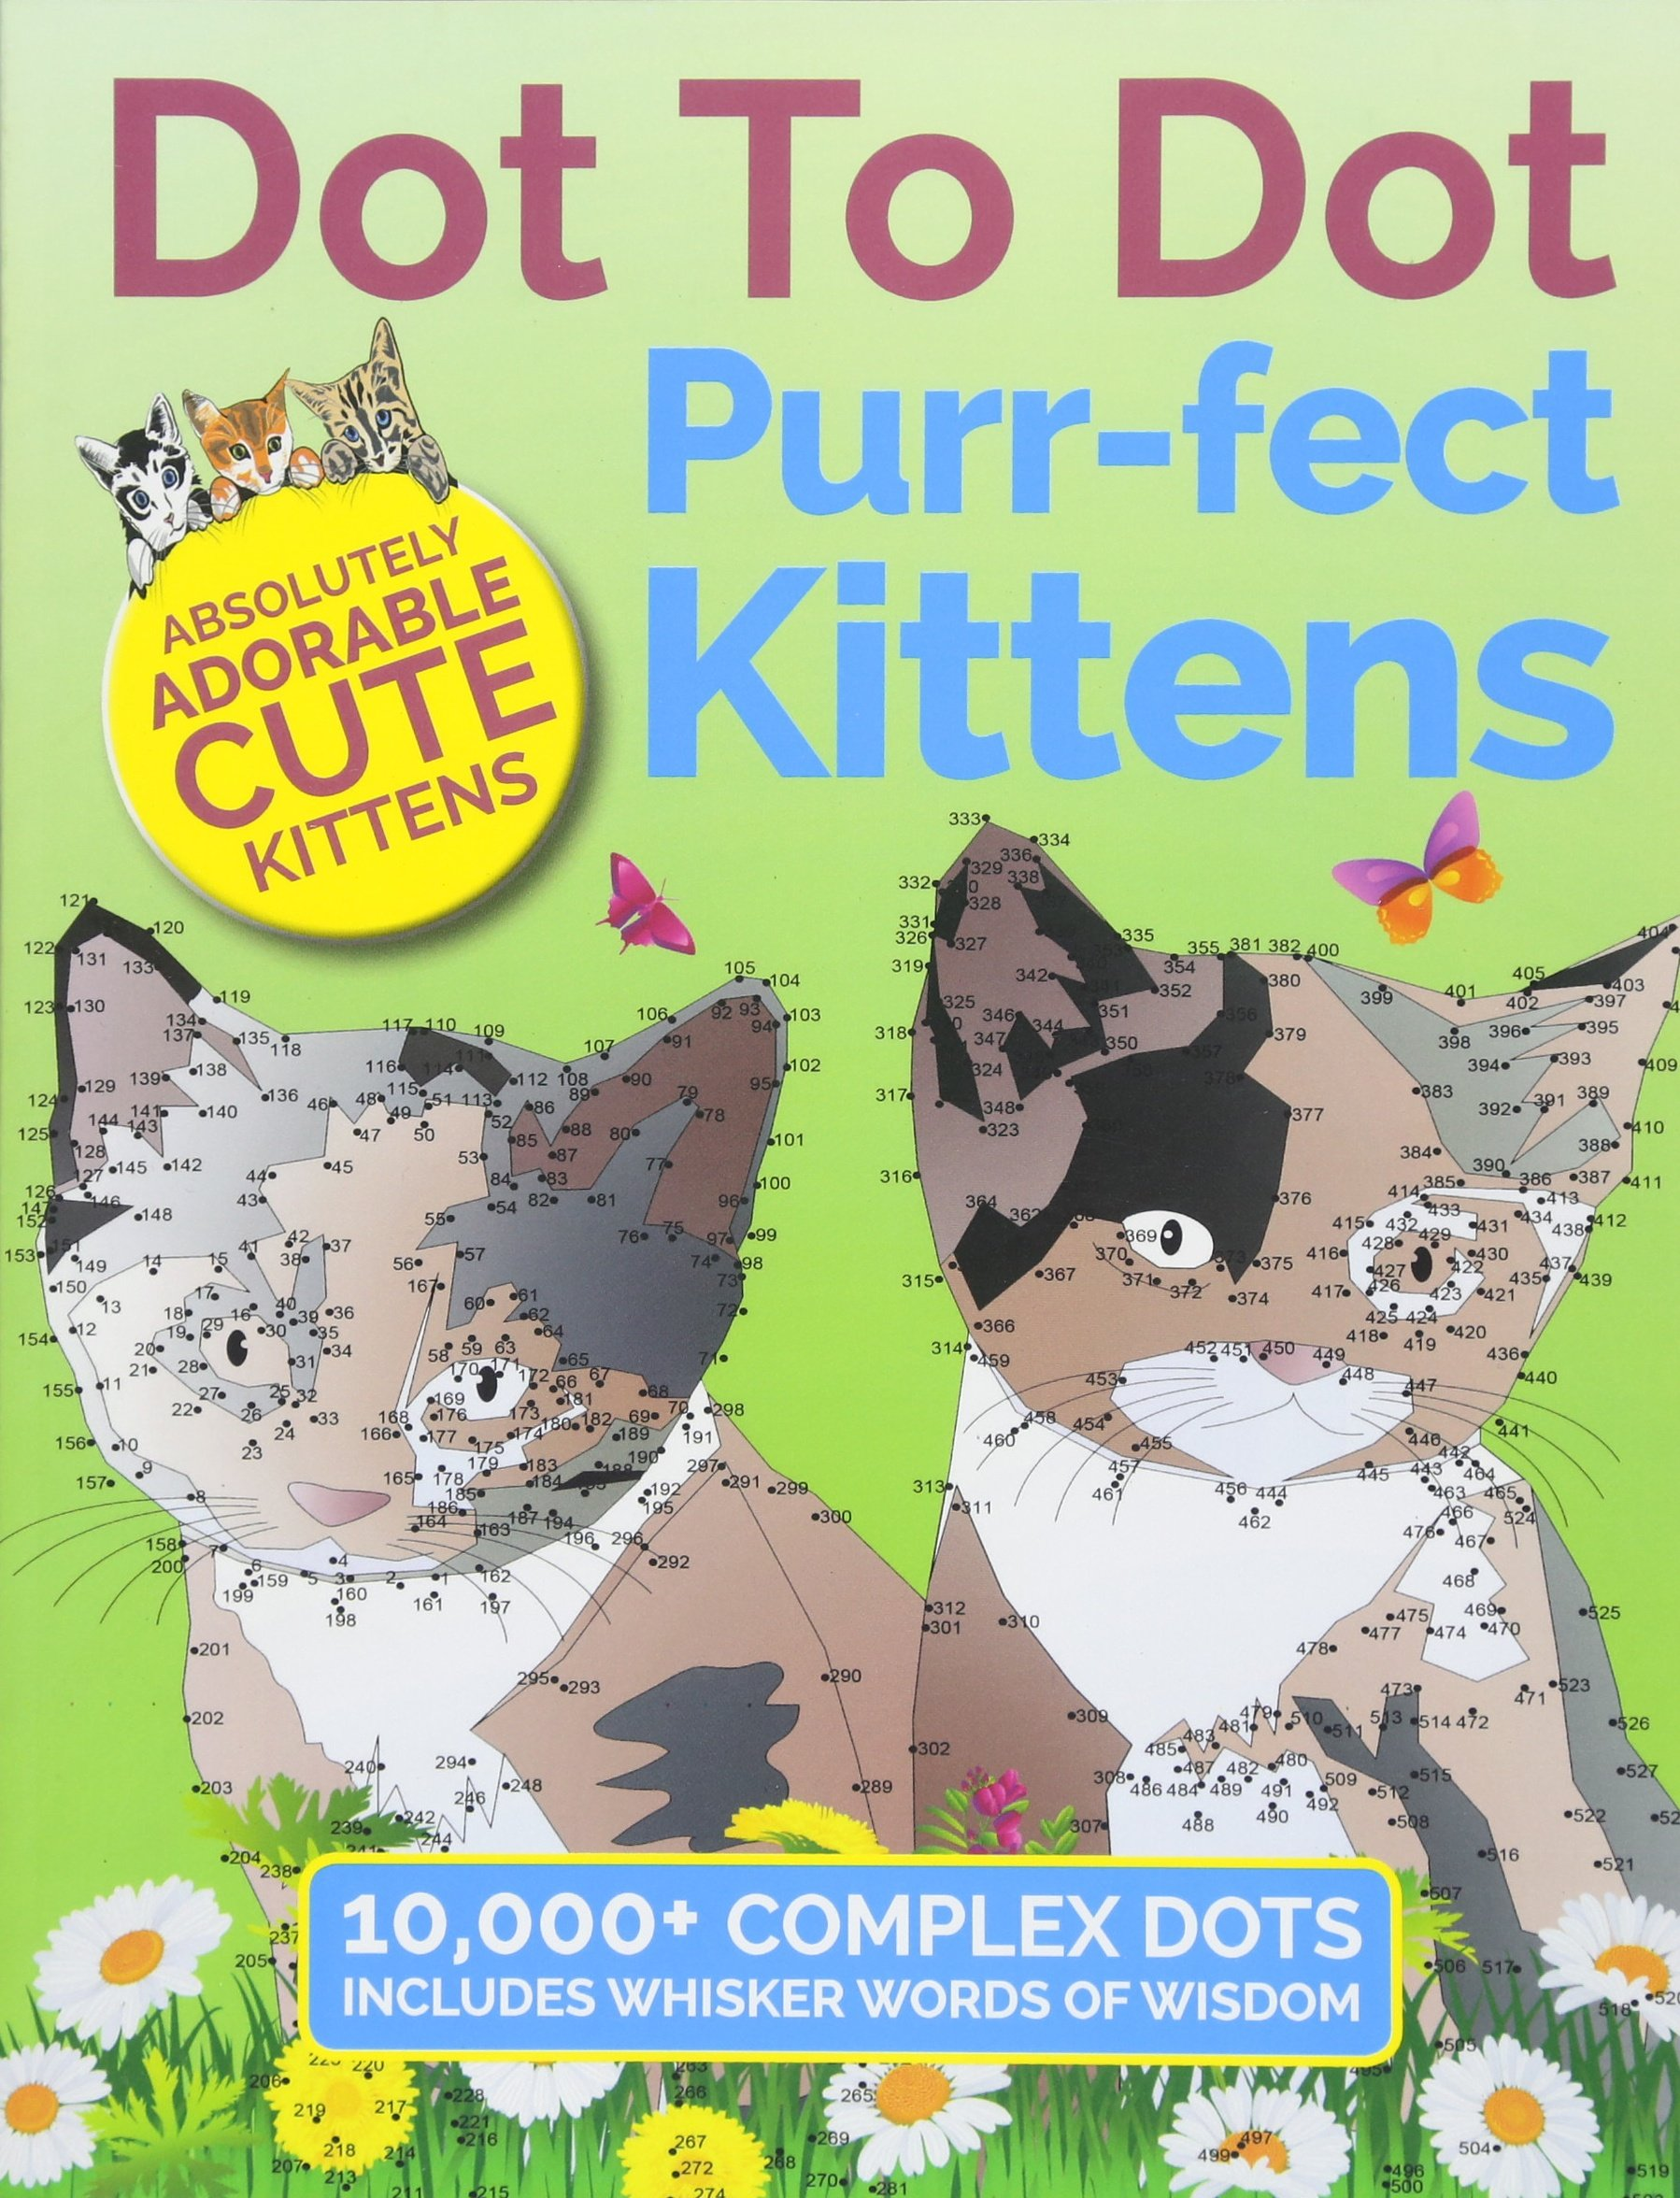 Dot To Dot Purr-fect Kittens: Absolutely Adorable Cute Kittens to Complete and Colour